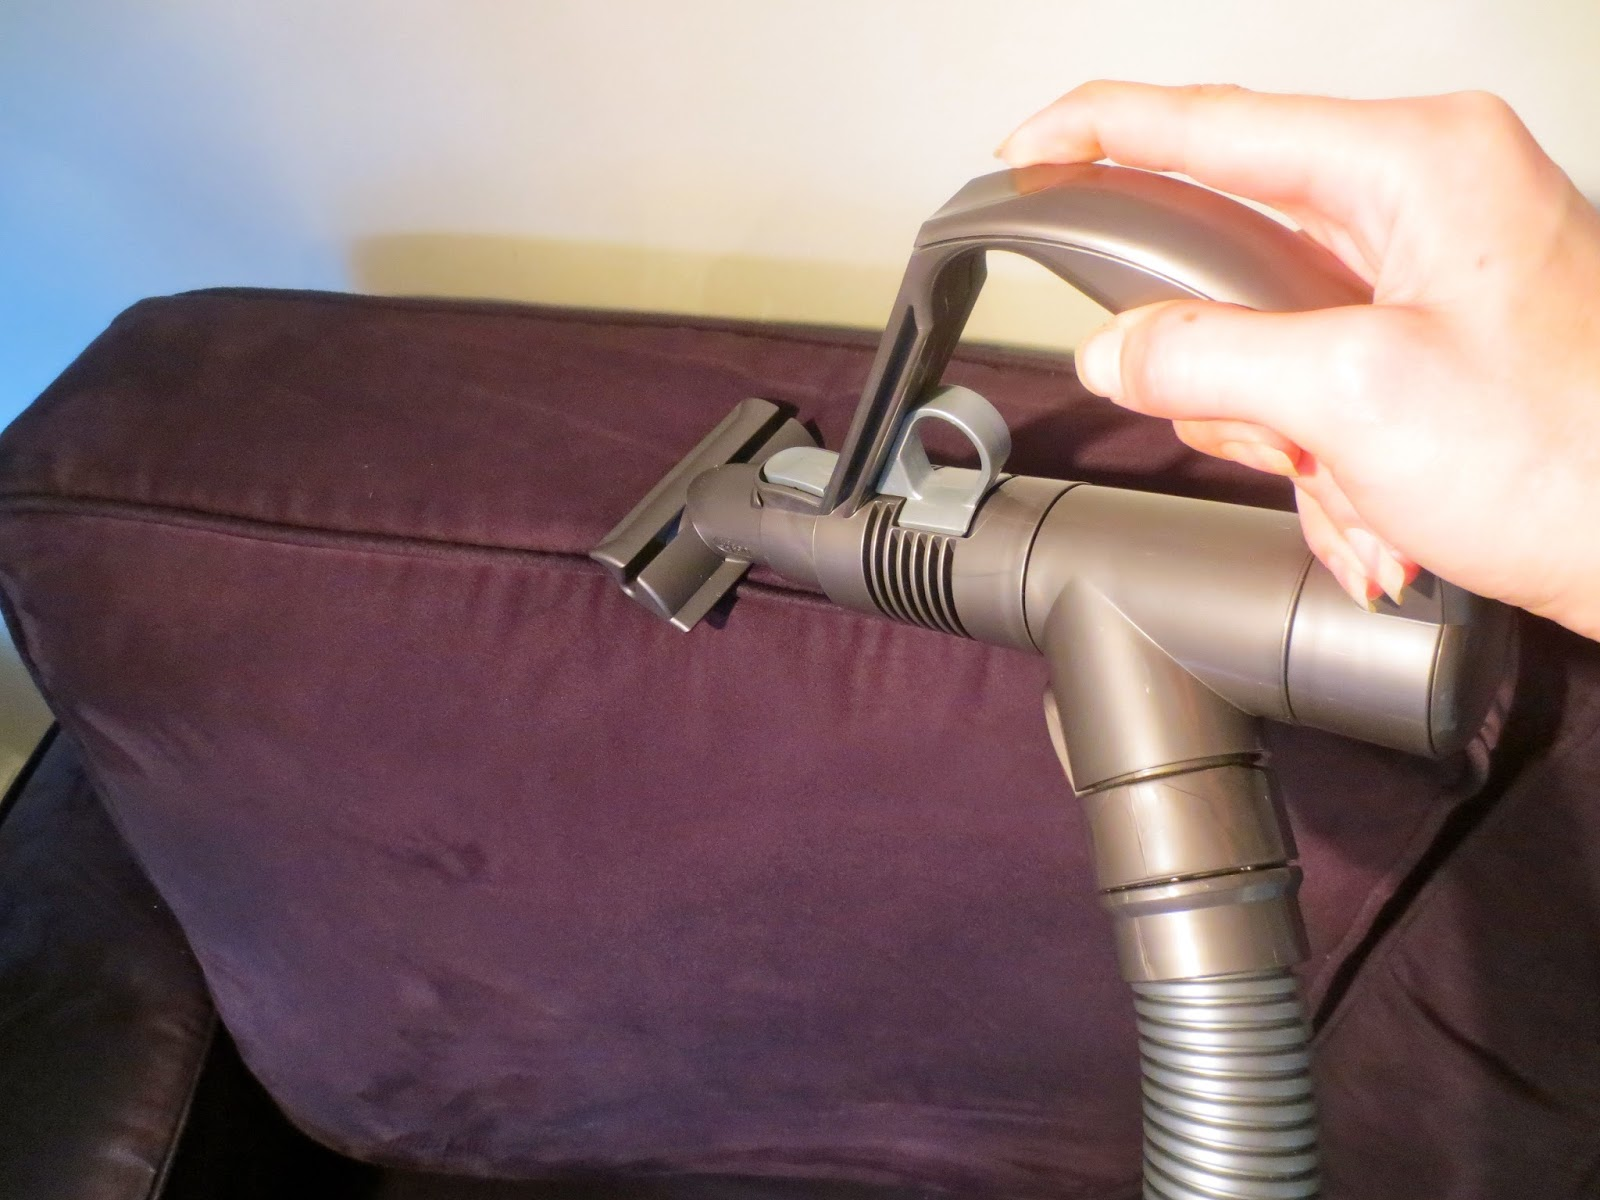 The Hussy London Housewife: Dyson DC38 Vacuum Cleaner